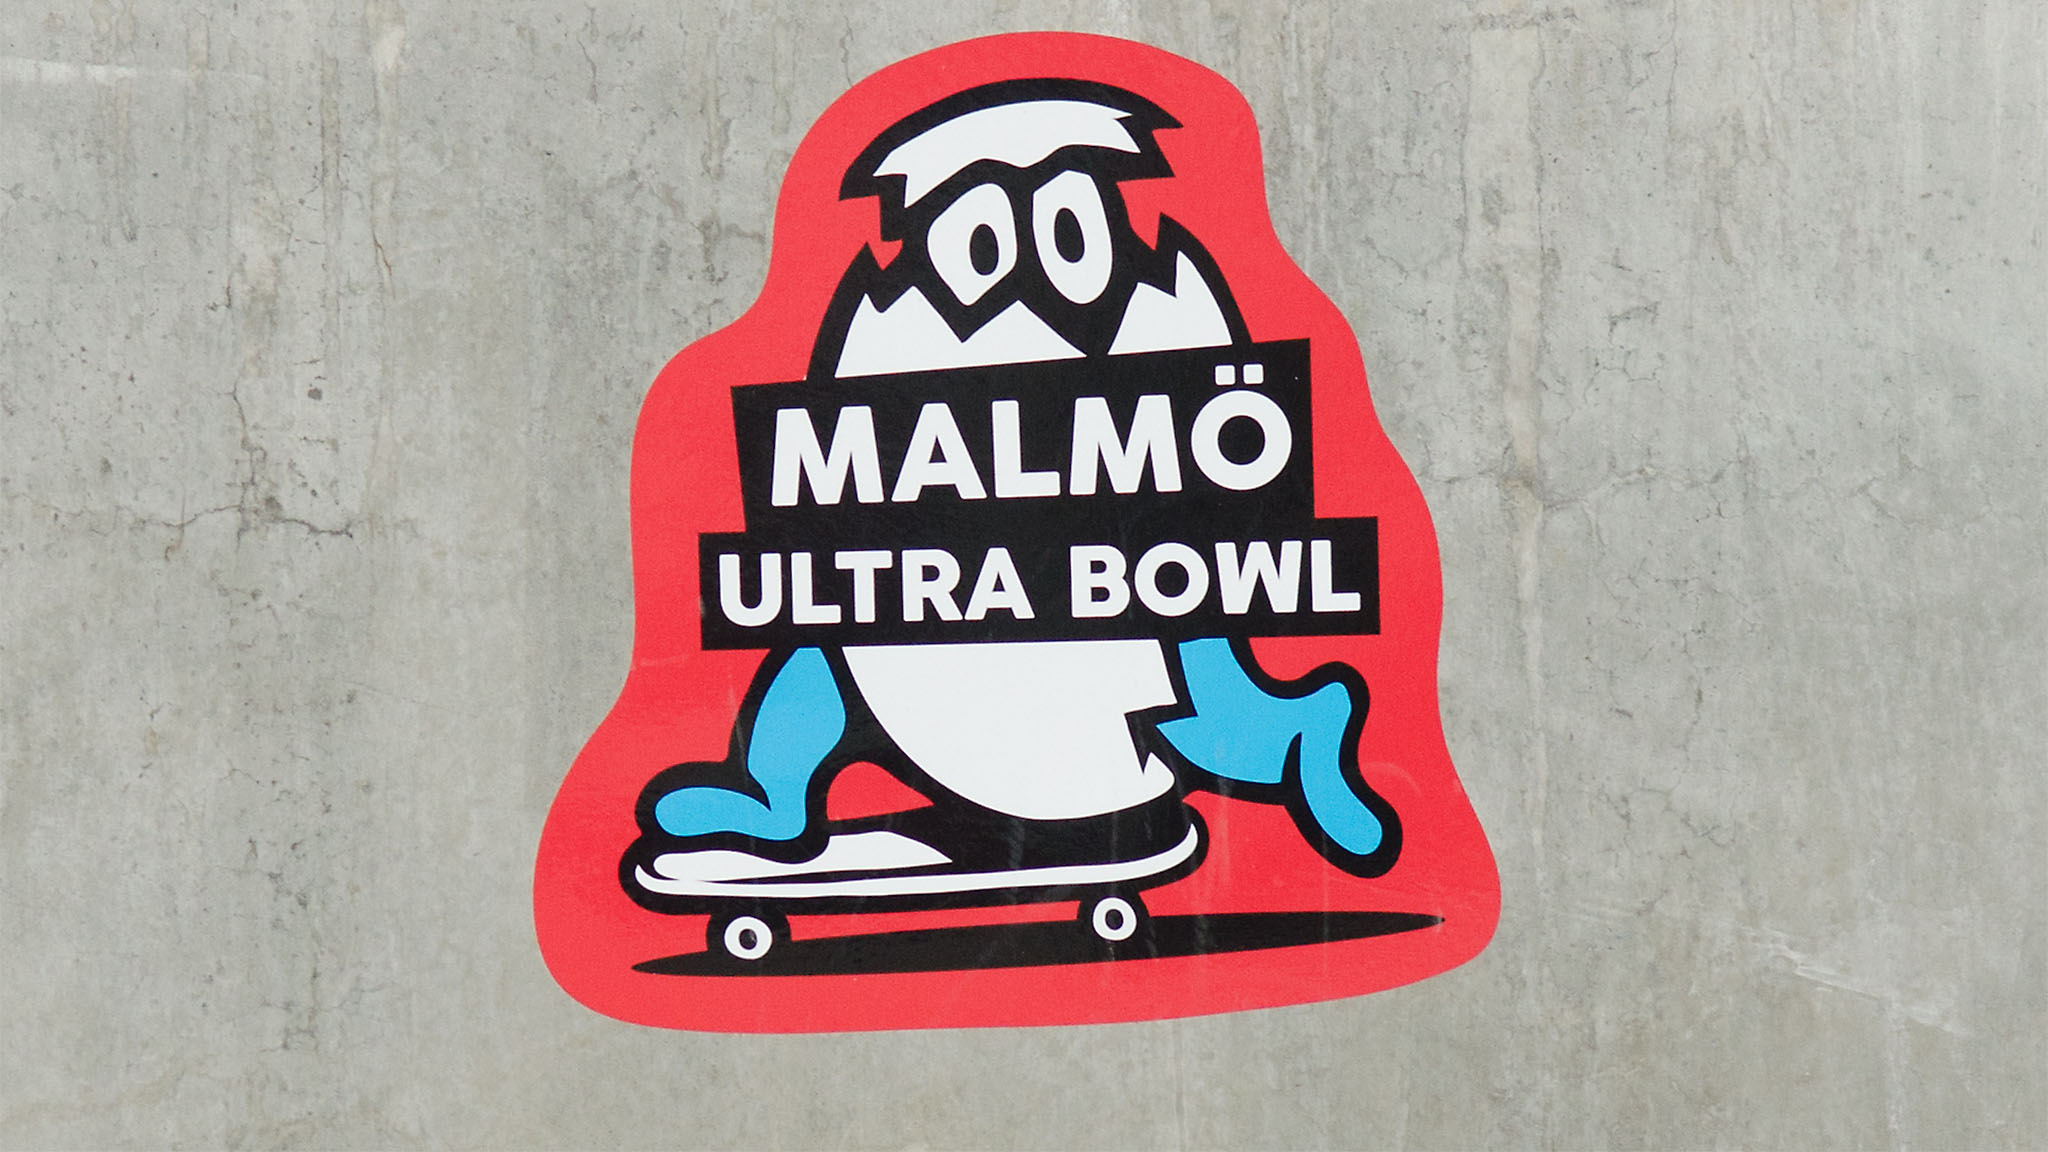 Ultra Bowl 6 -- Malm, Sweden